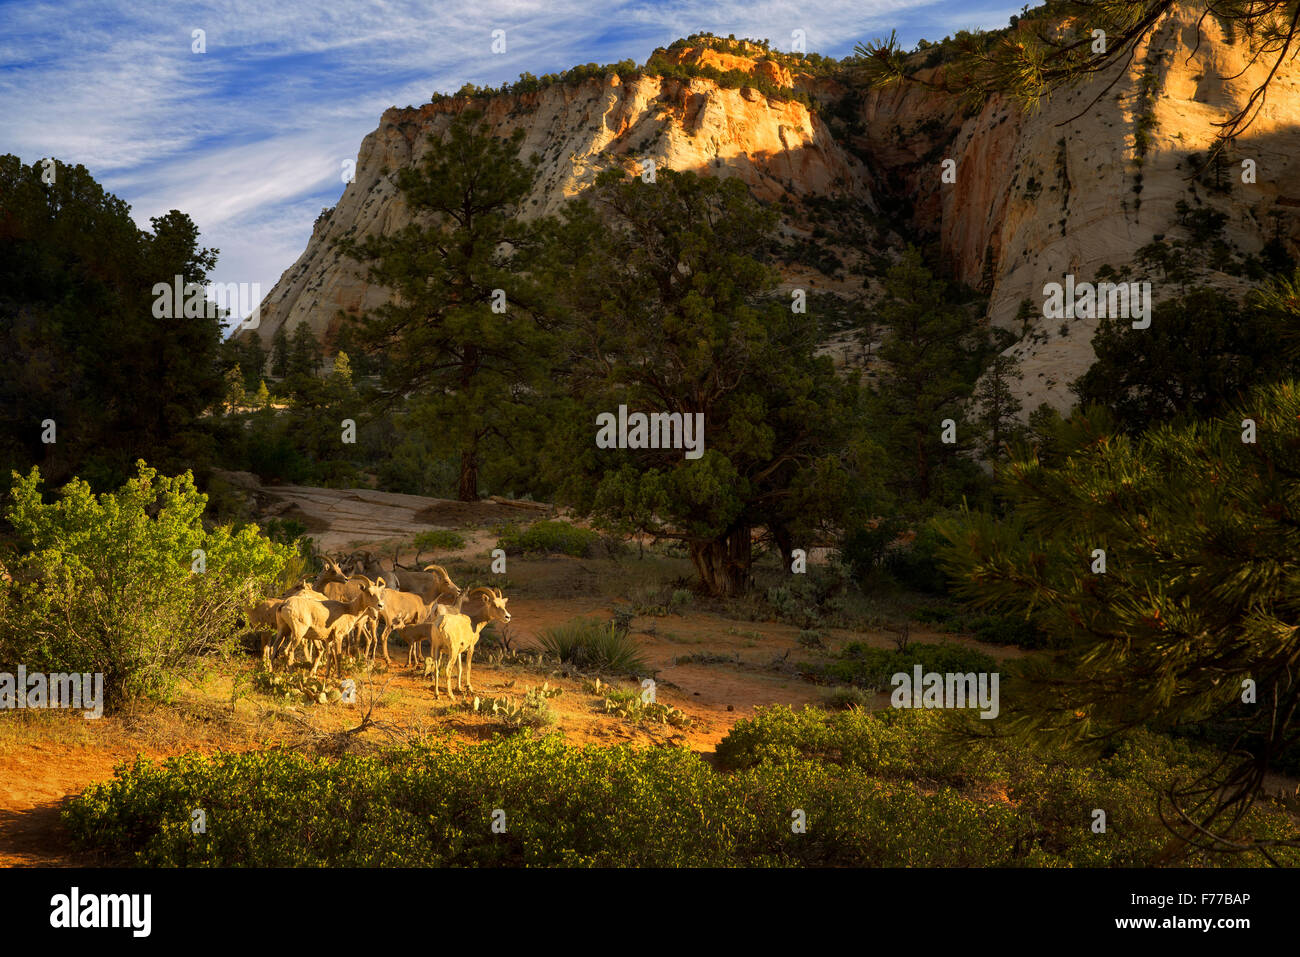 Big Horned Sheep. Zion National Park, Utah - Stock Image